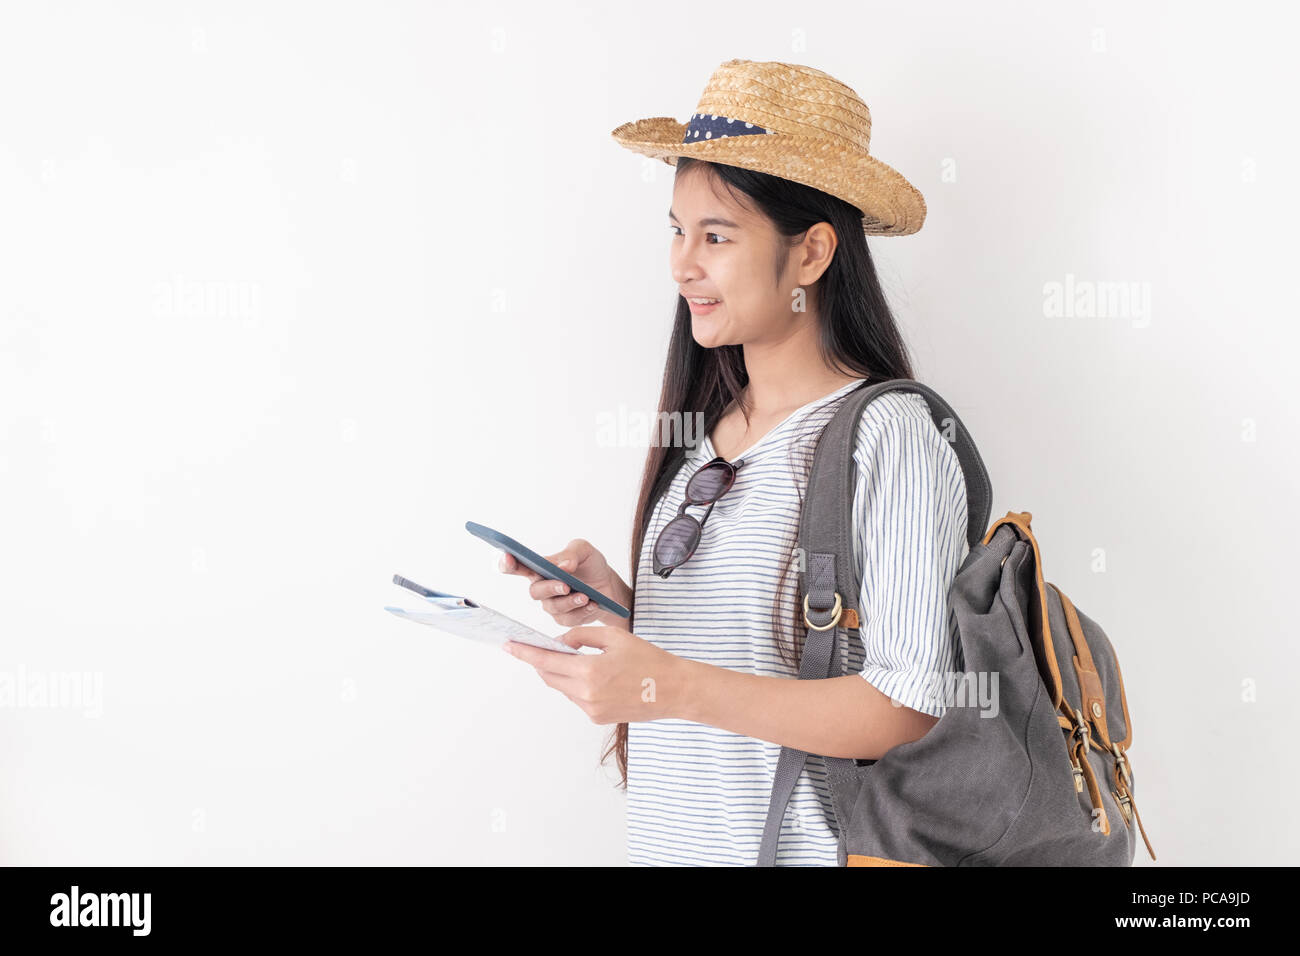 Asian woman traveler backpacker use map and mobile phone app